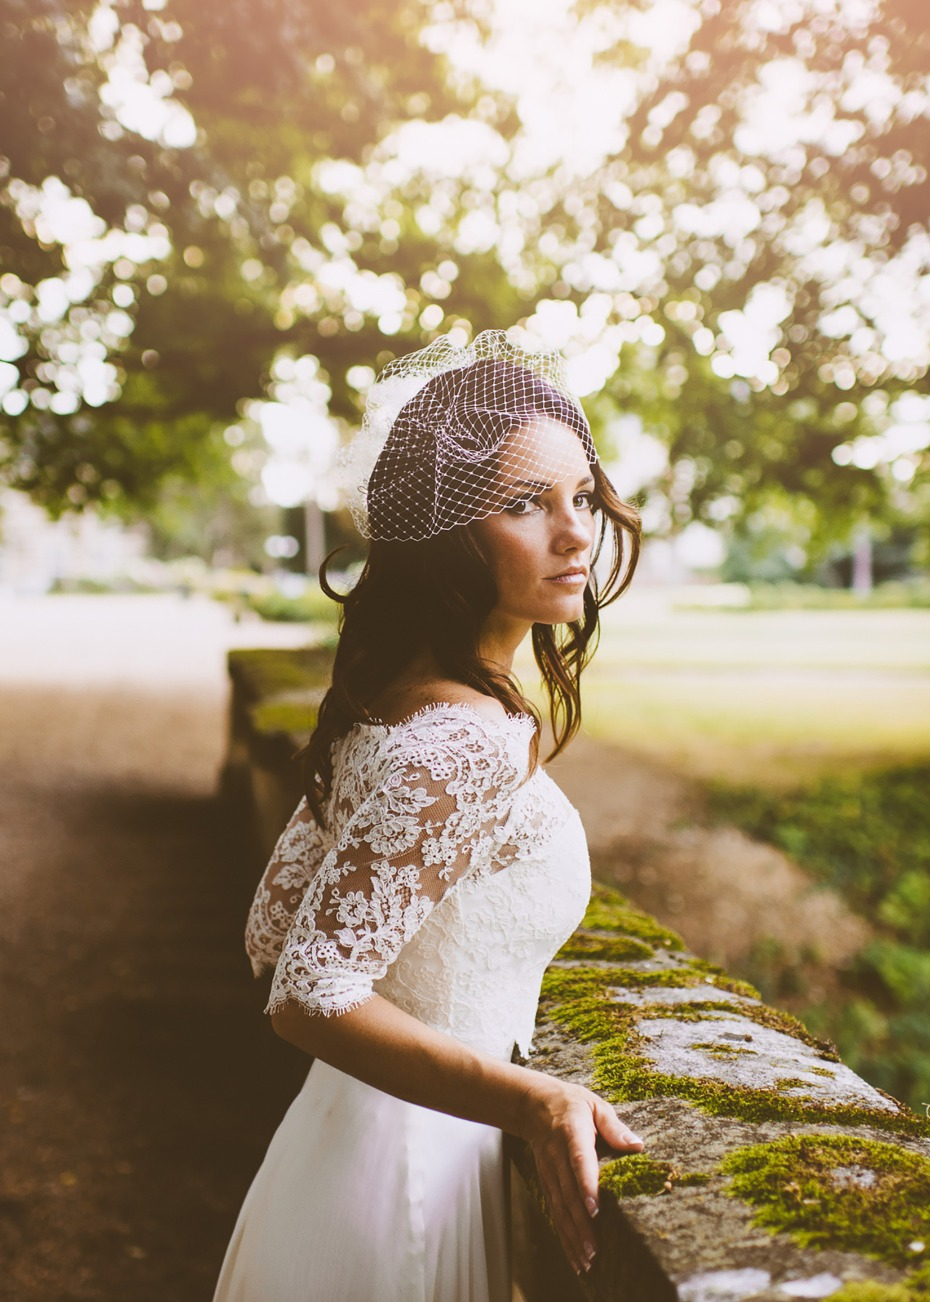 Wedding dress with lace top overlay